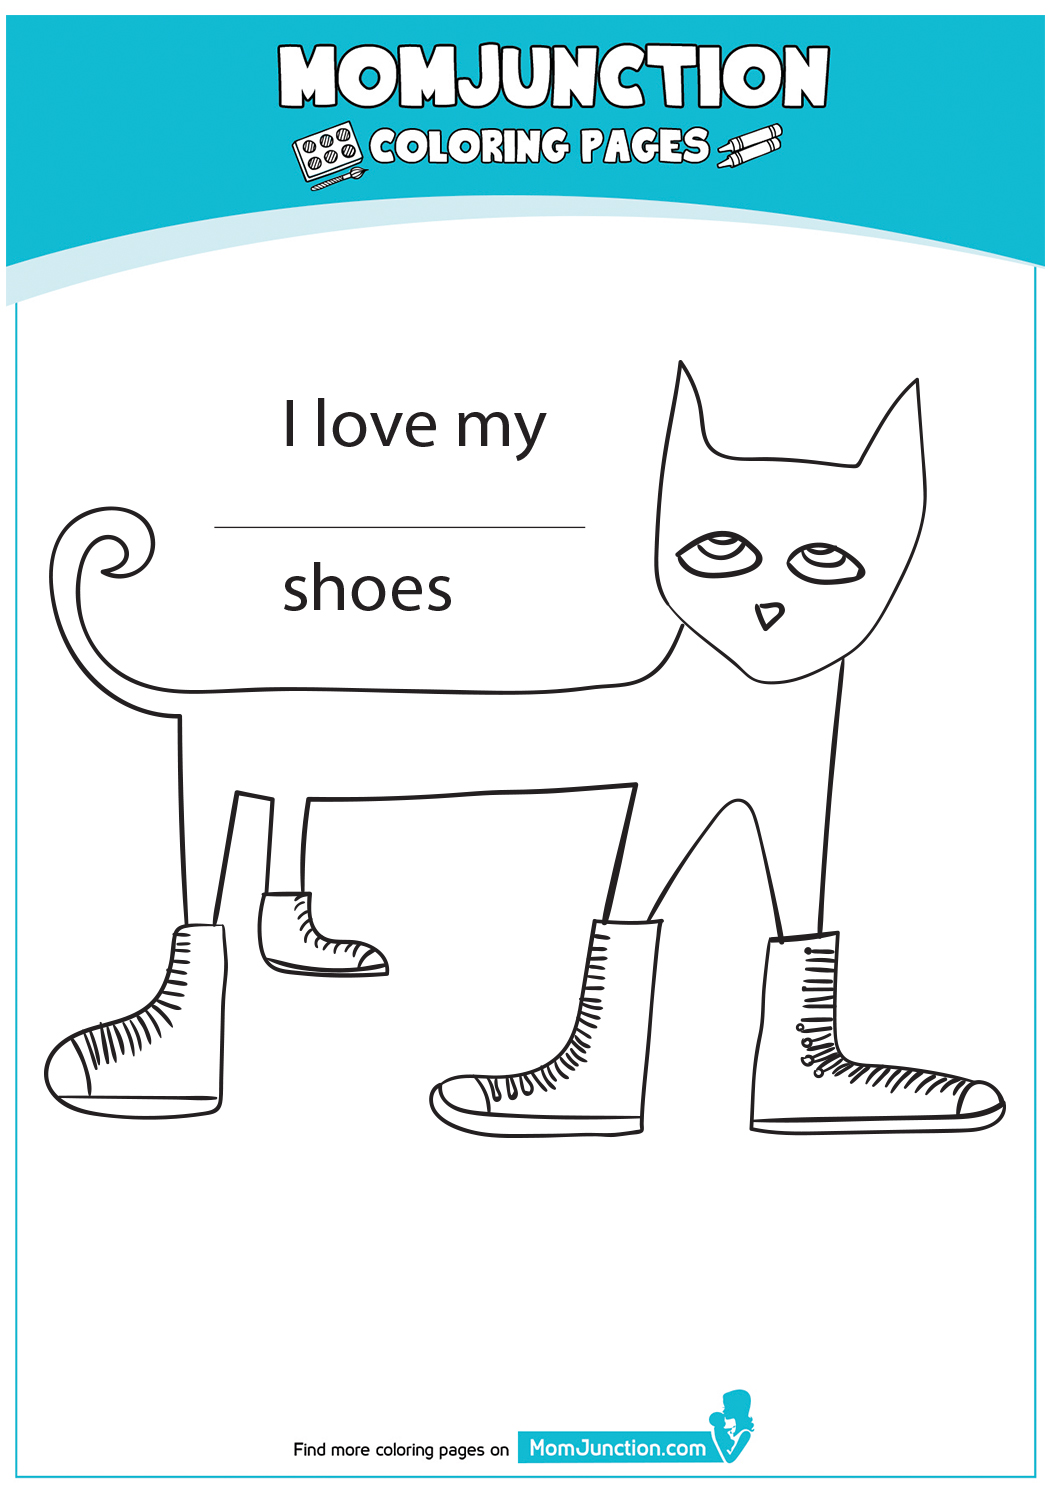 the-pete-loves-his-white-shoes